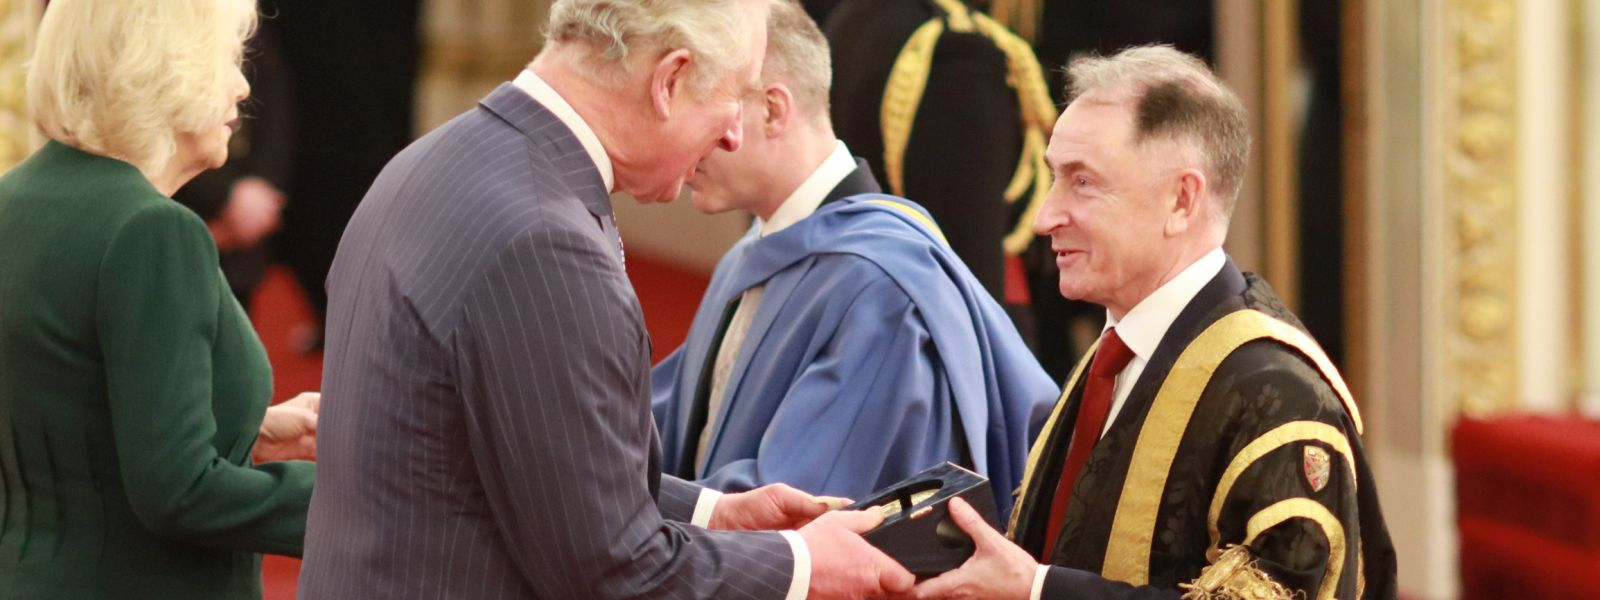 HRH The Prince of Wales presents Professor Sir Jim McDonald with the Queen's Anniversary Prize.